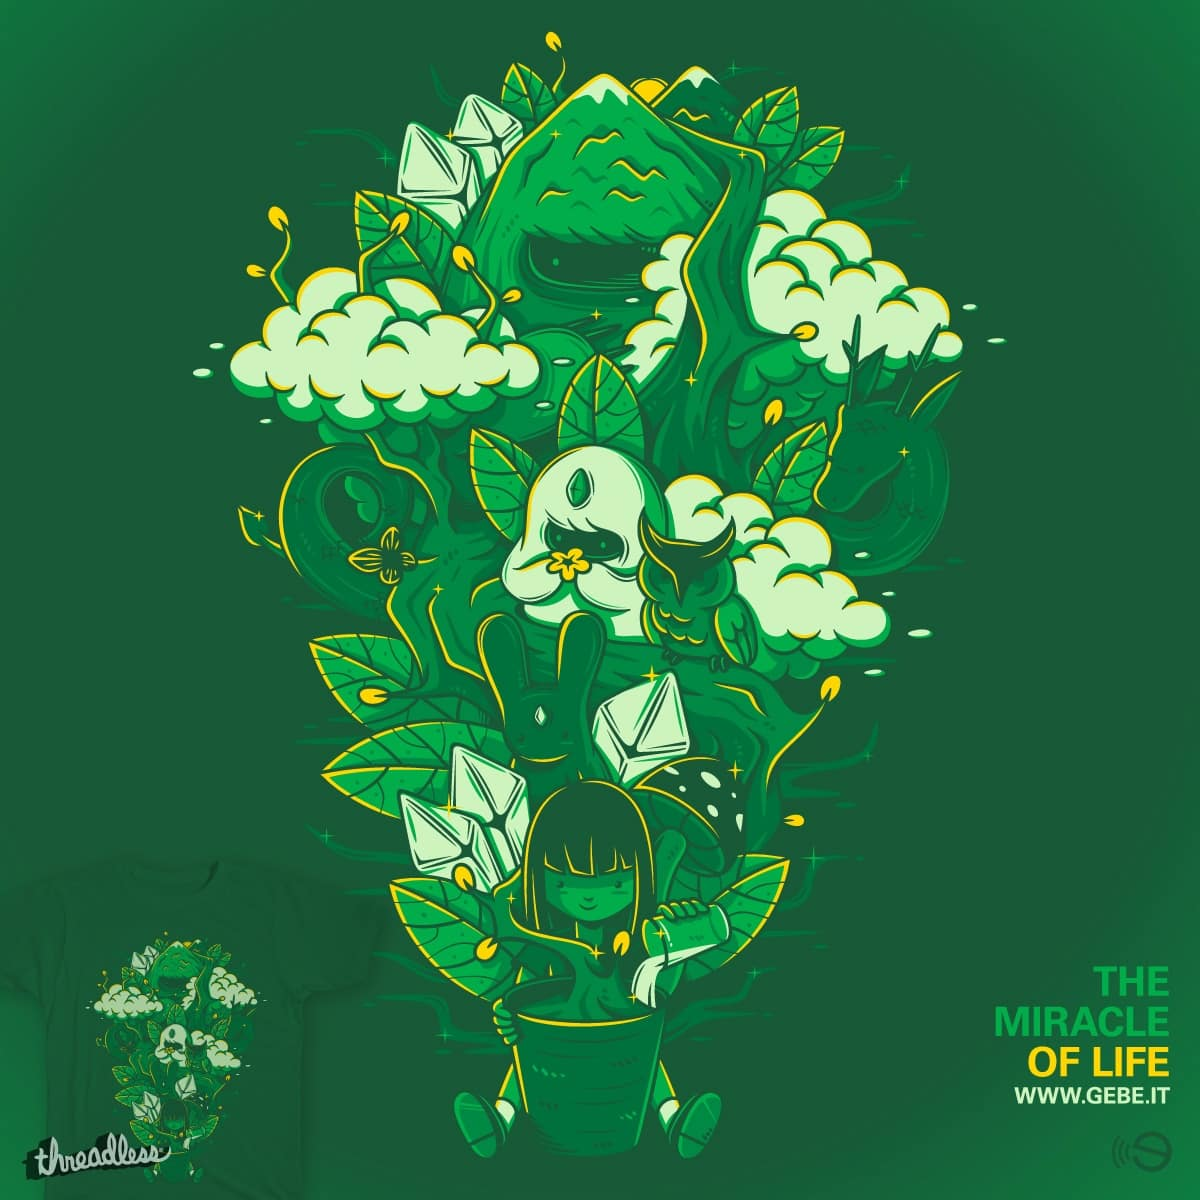 The miracle of life by gebe on Threadless